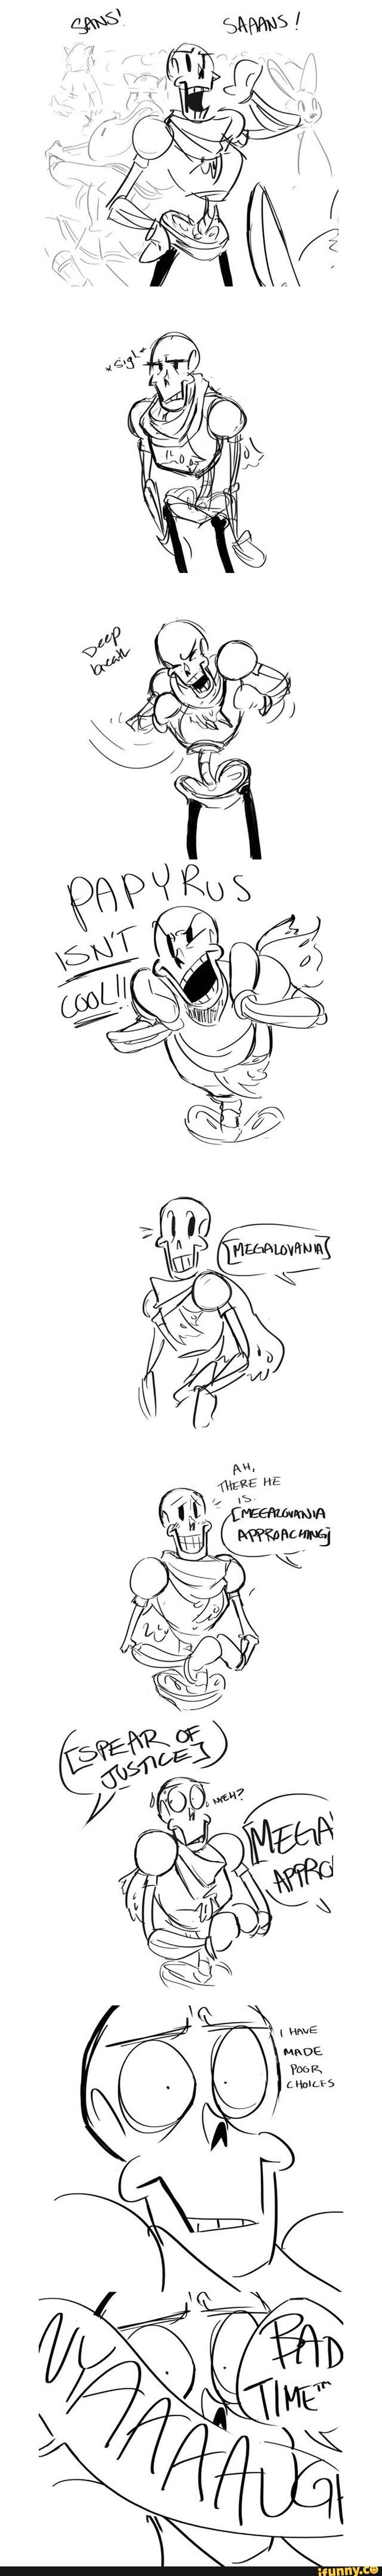 papyrus - omg megalovania and spear of justice *-* you fucked up, papyrus